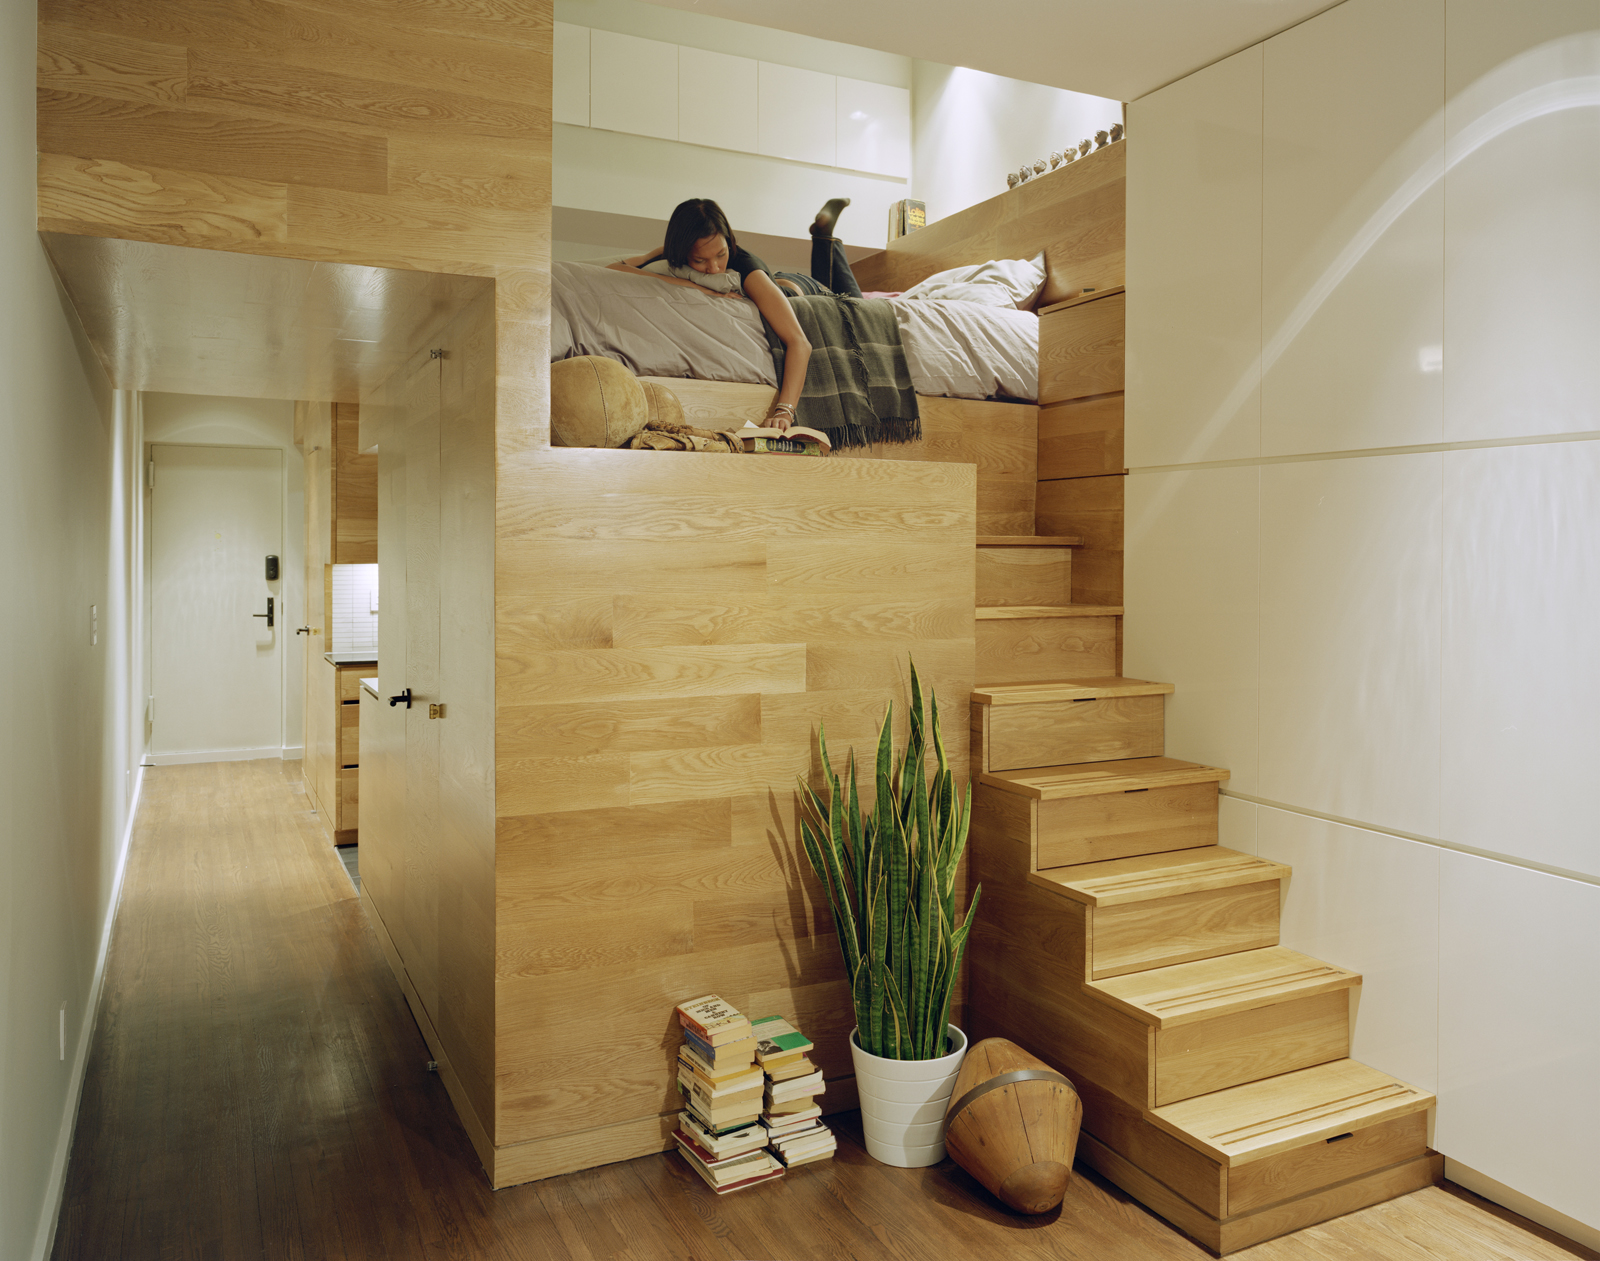 Beds For Studio Apartments 1000 43 Images About Lofts Attics On Pinterest